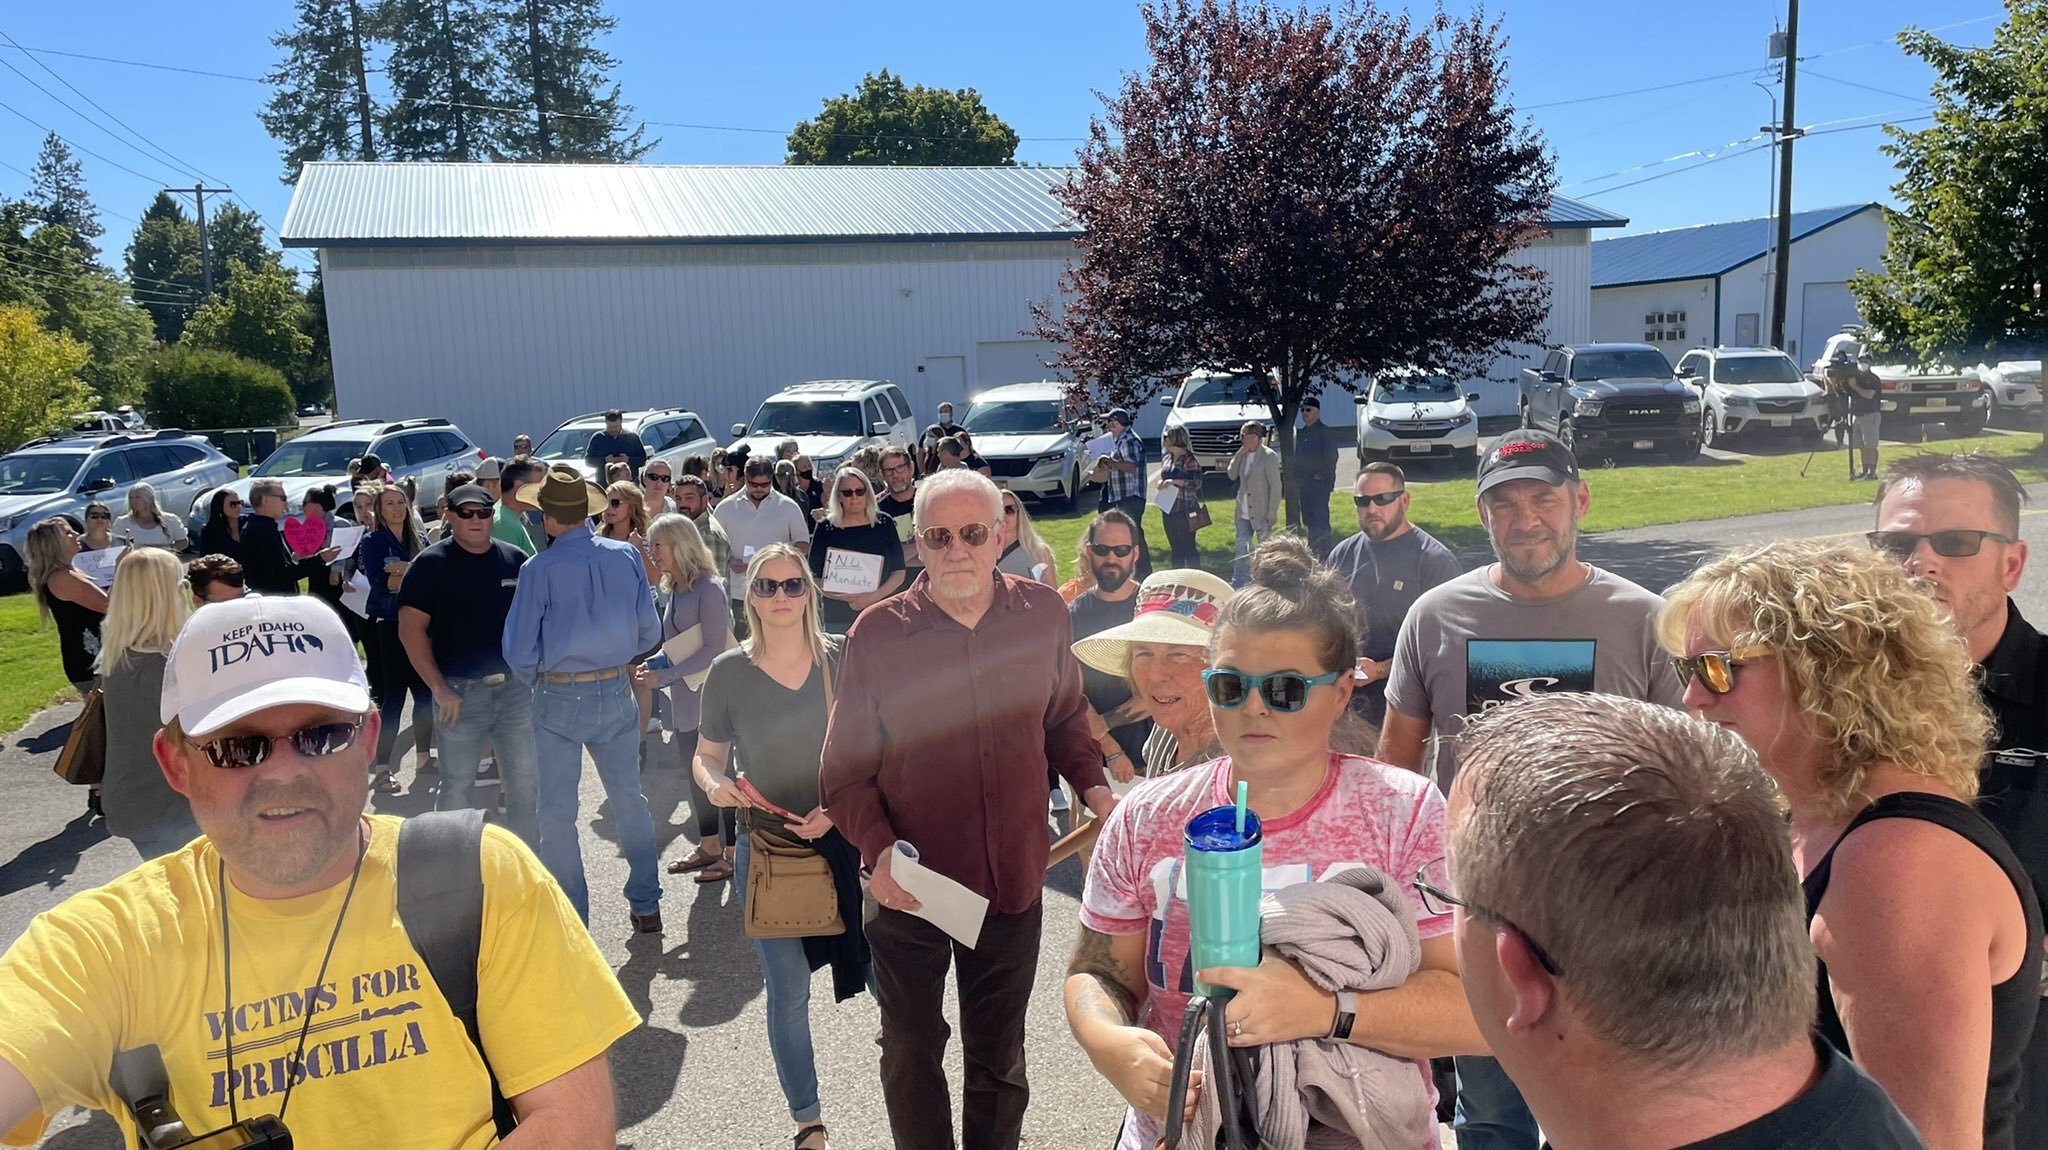 <i>Elenee Dao//KXLY</i><br/>The Coeur D'Alene Public Schools school board meeting discussing a temporary mask mandate was canceled due to security concerns related to the size of a crowd of protesters on September 24.